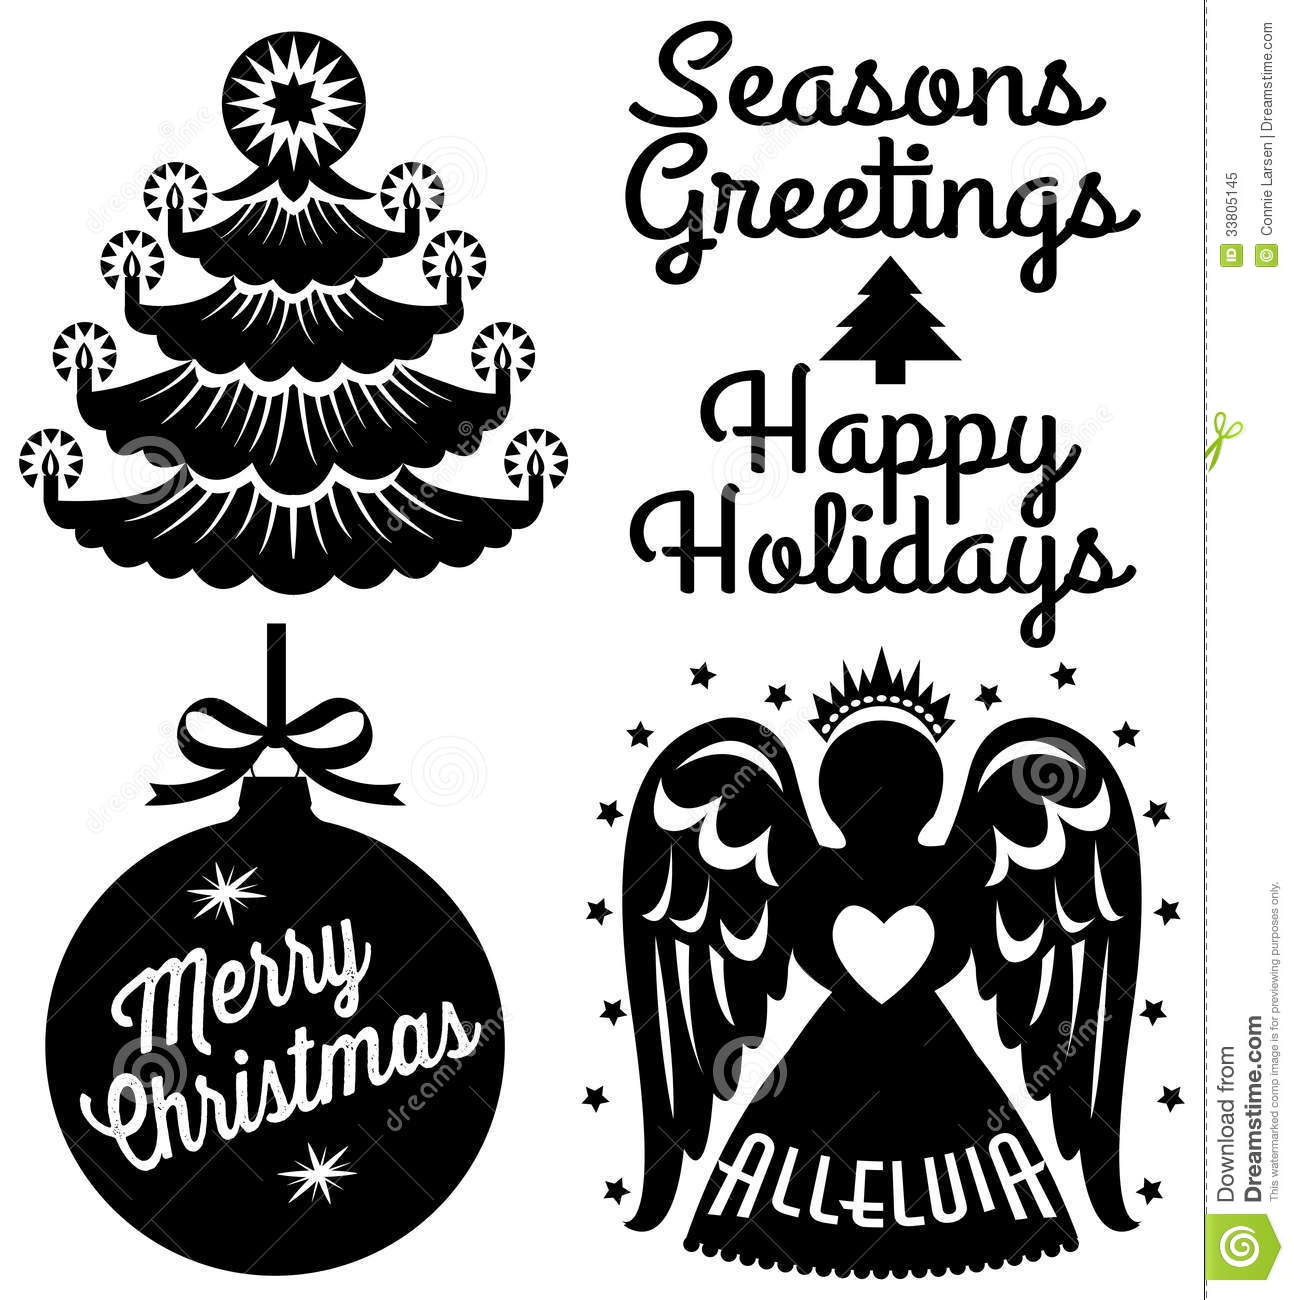 Christmas Ornament Clip Art Black And White Retro Christmas Clip Art Set Royalty Free Stock Photo